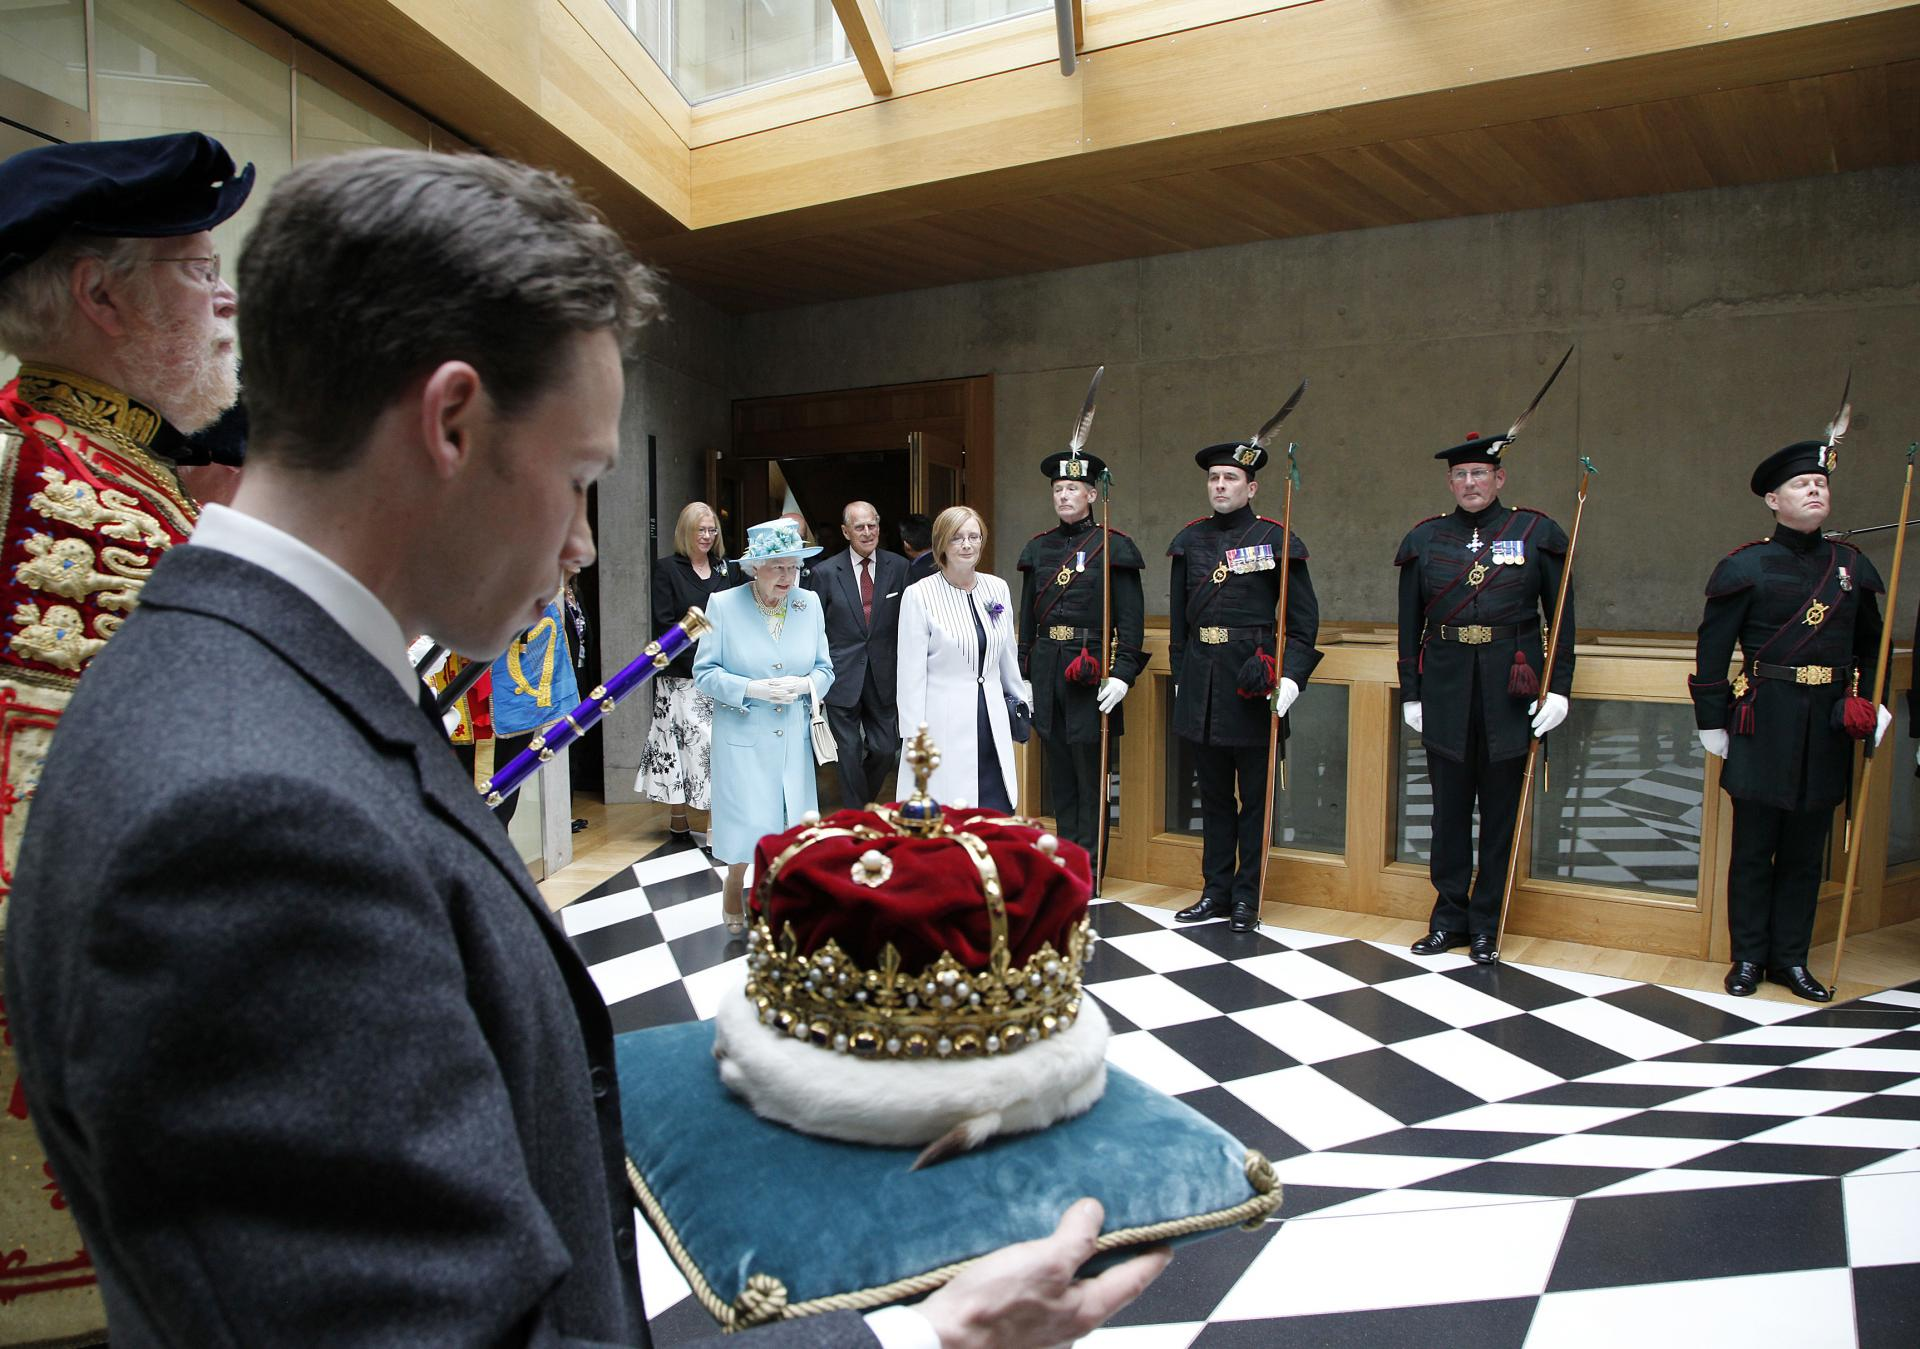 The queen at the scottish parliament